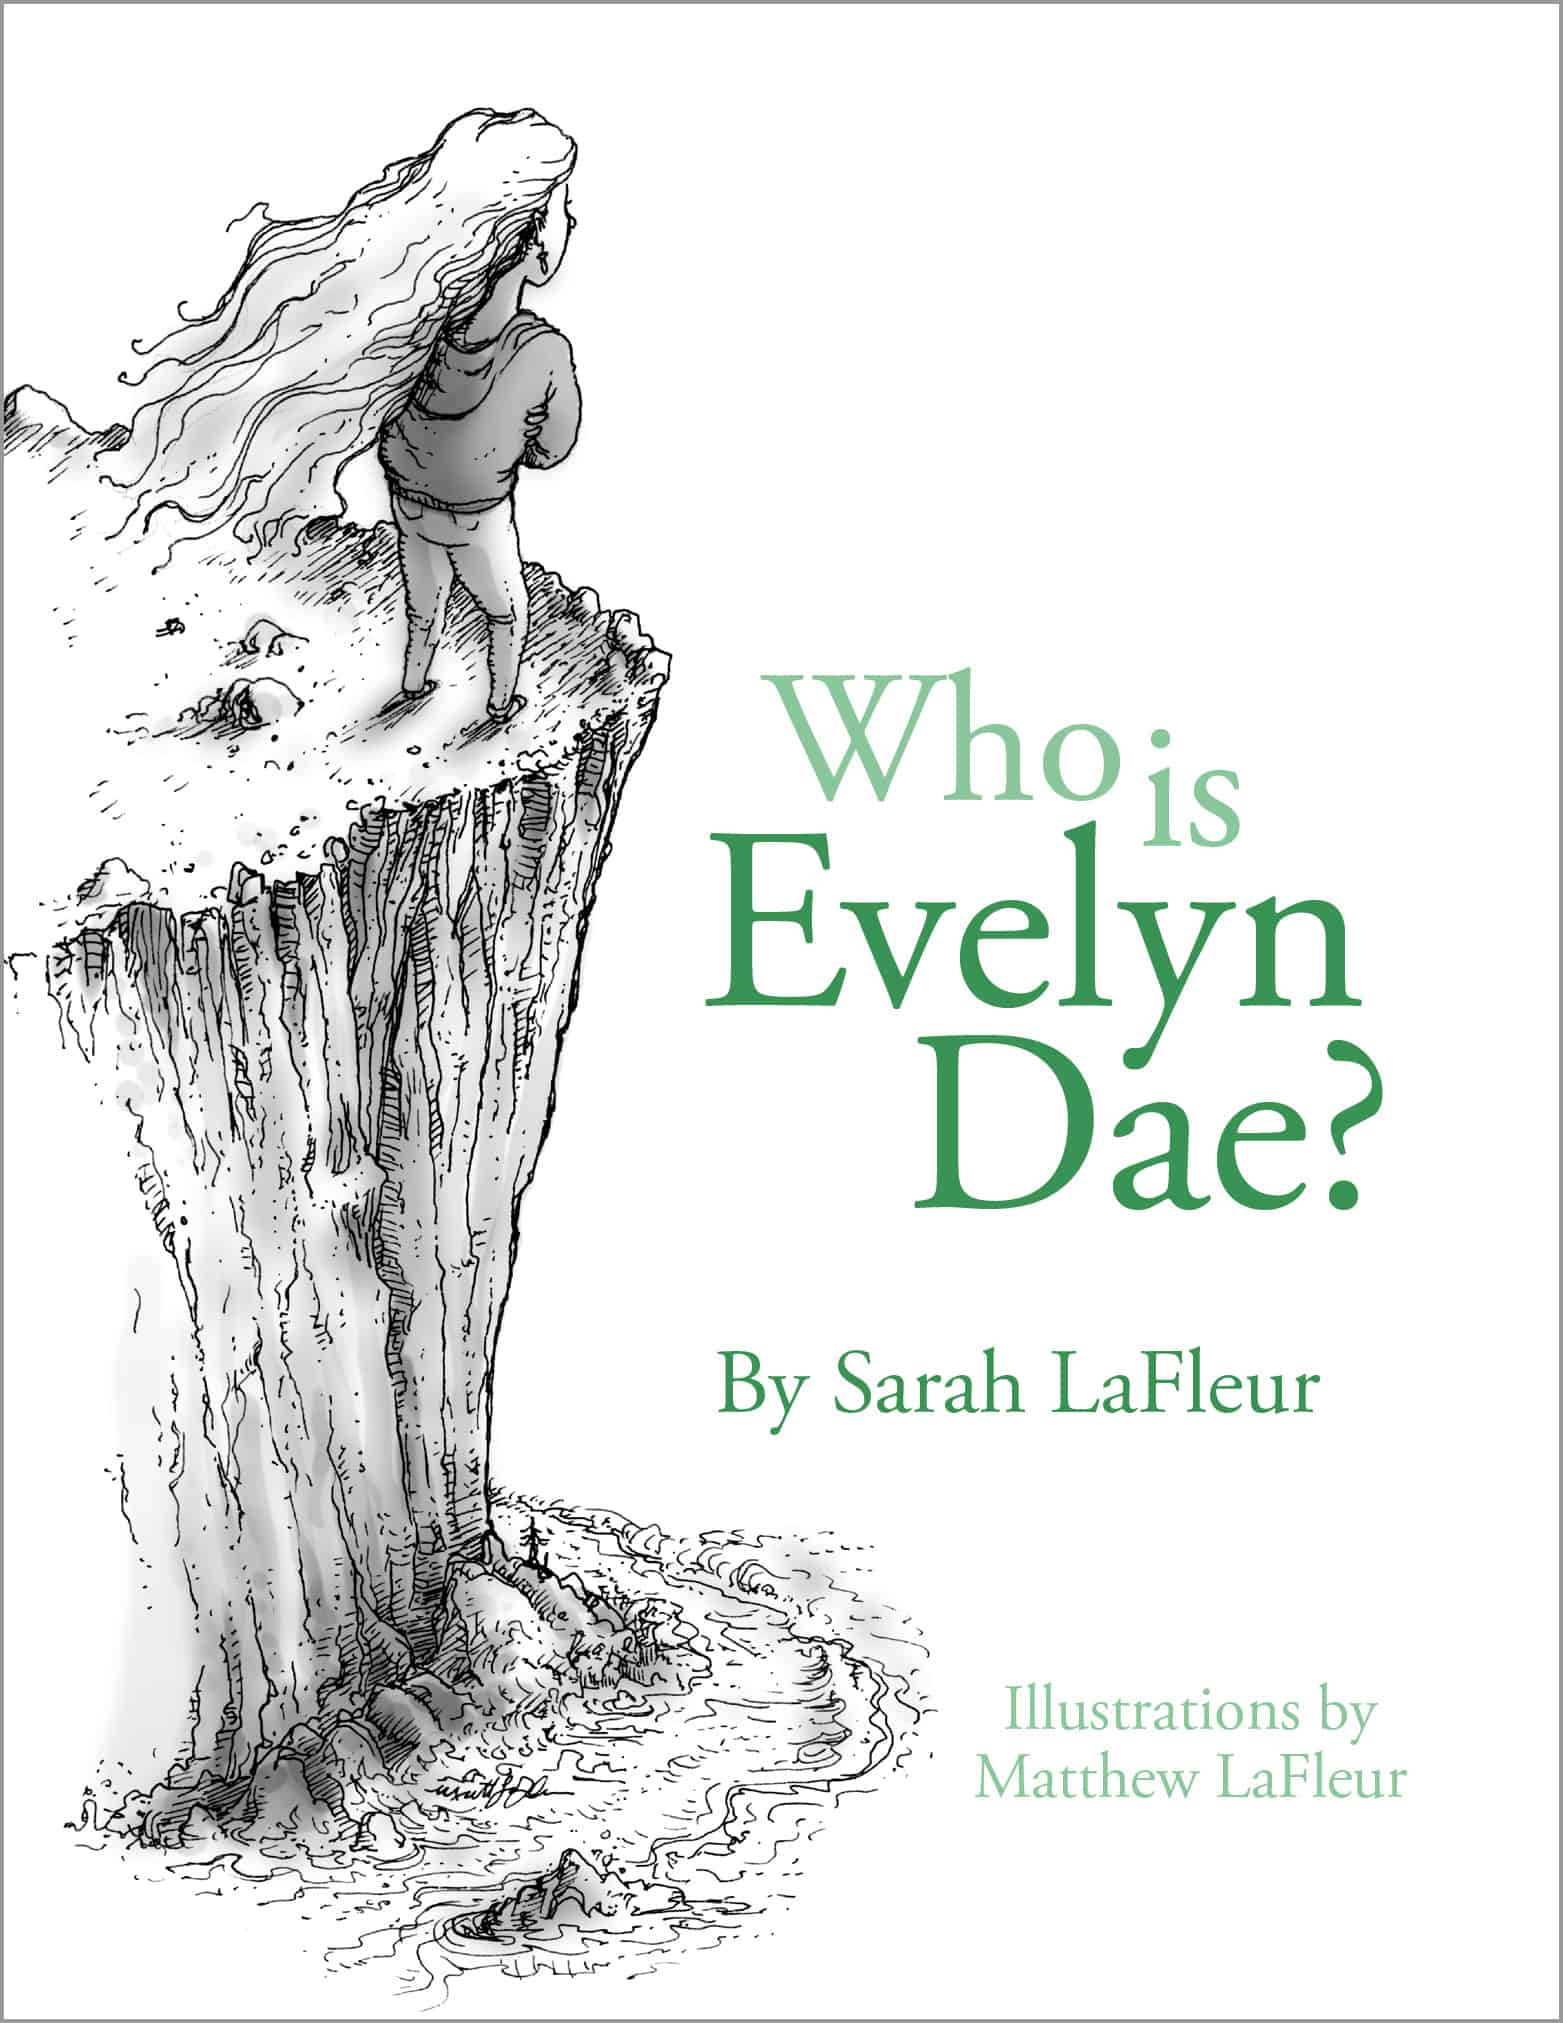 WHO IS EVELYN DAE by Sarah LaFleur